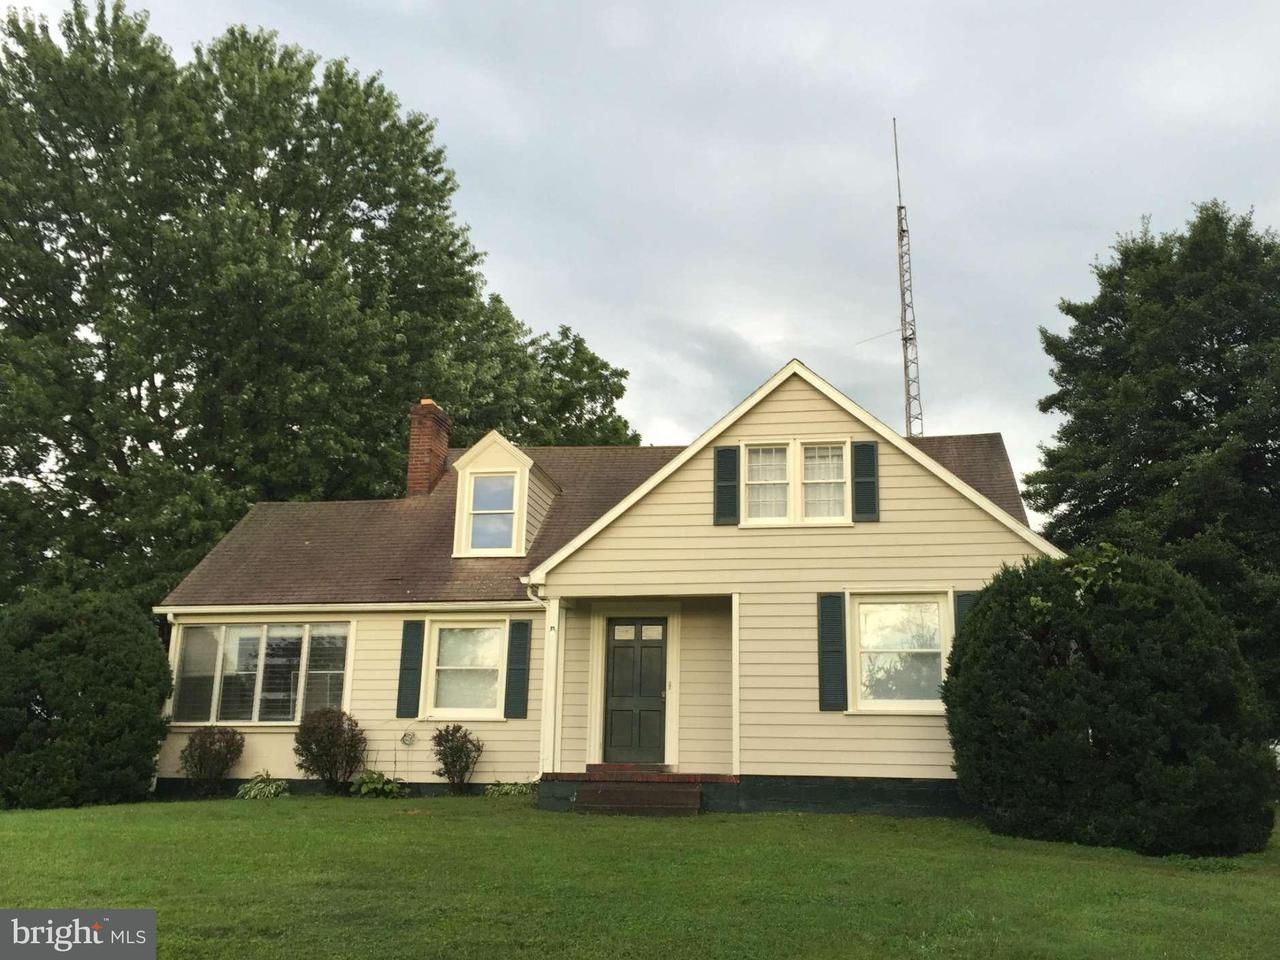 Commercial for Sale at 701 Madison Rd Culpeper, Virginia 22701 United States